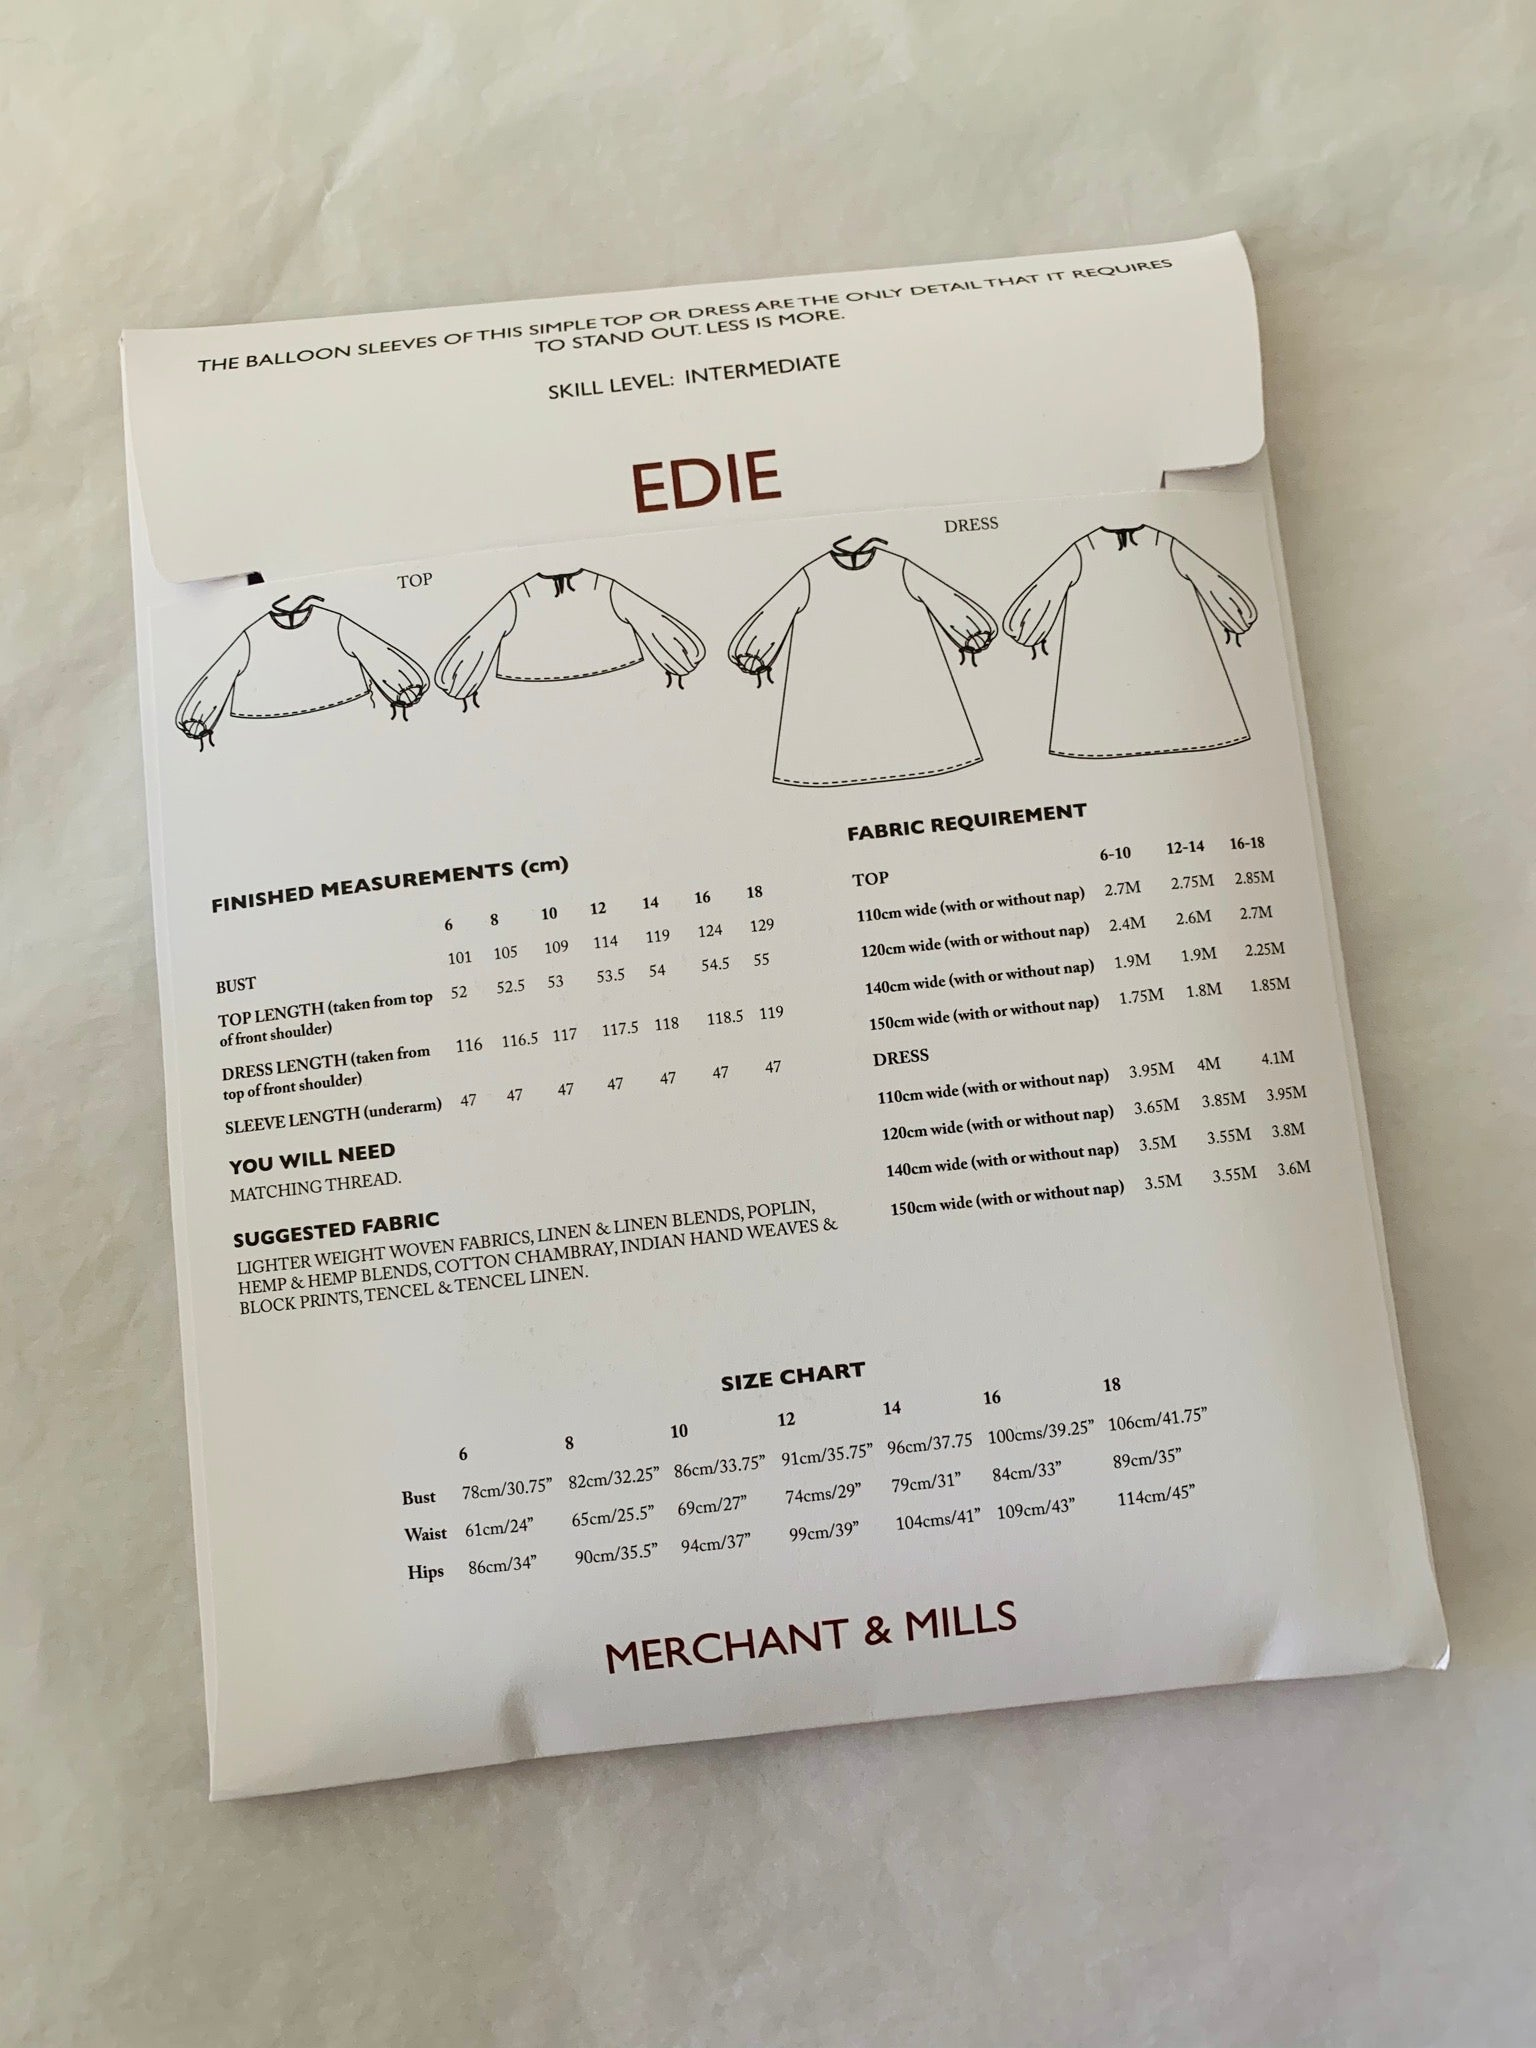 Merchant & Mills Sewing Pattern: Edie